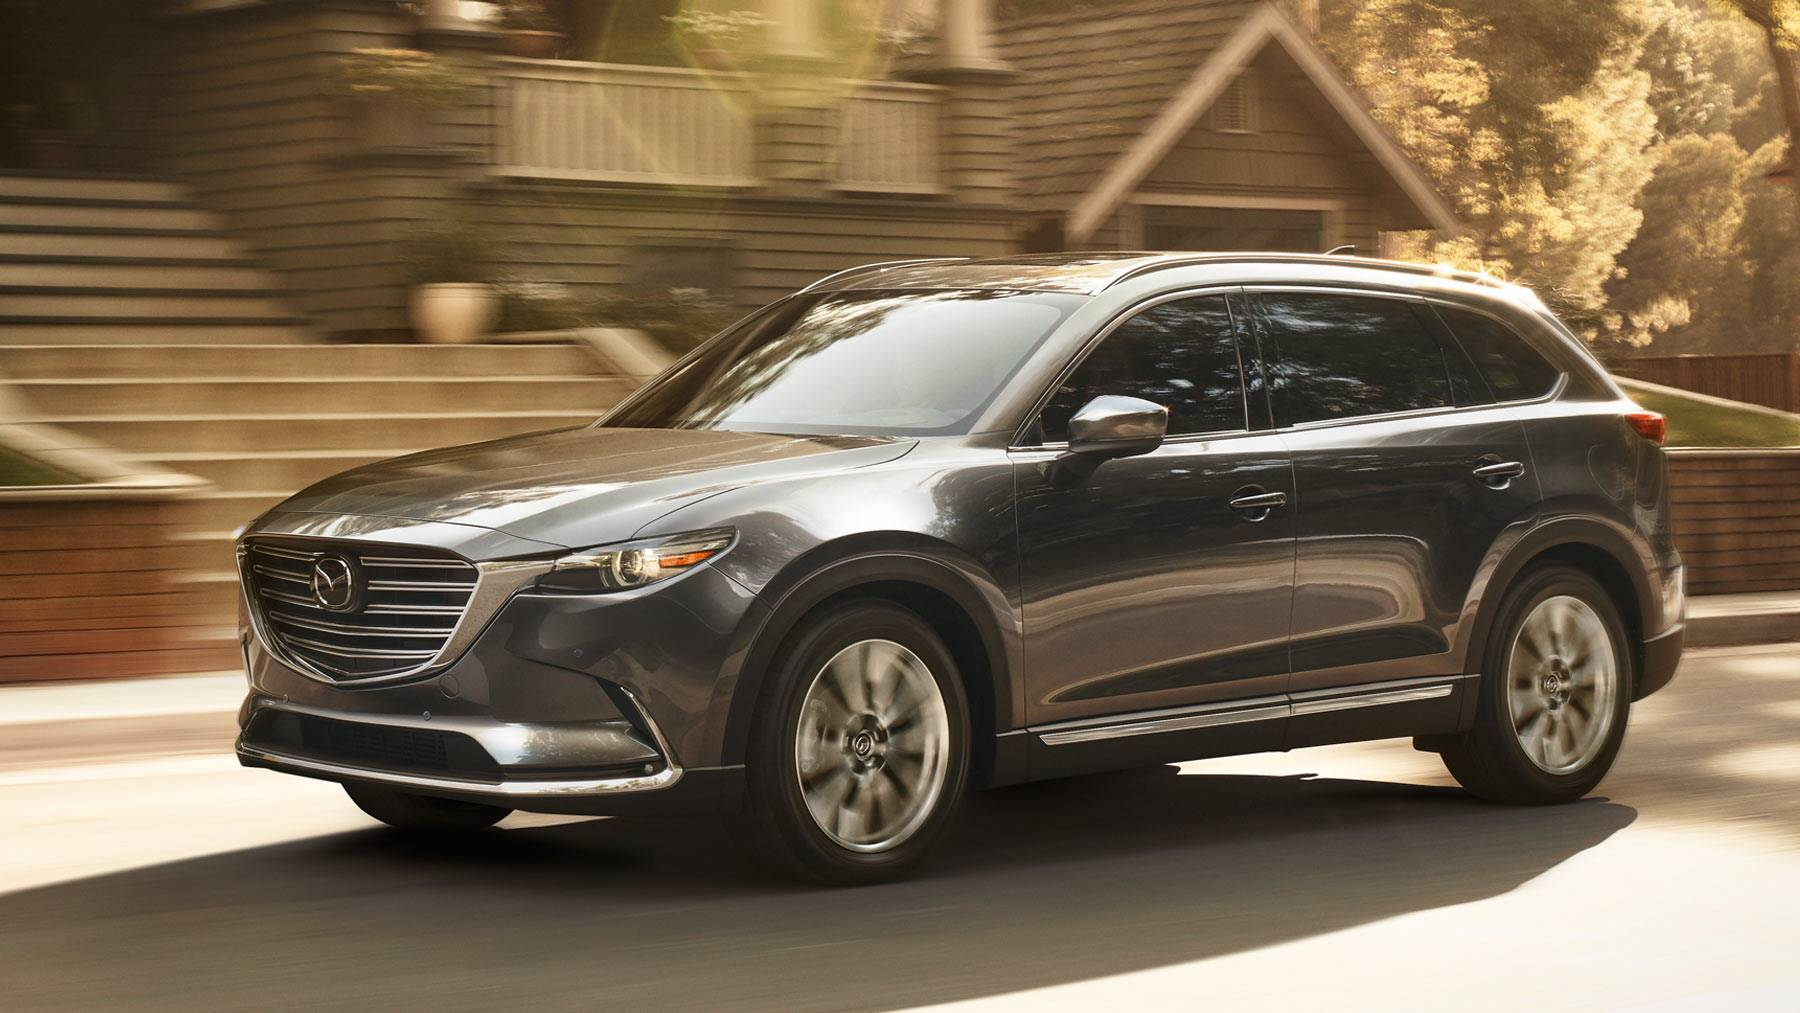 2018 Mazda CX-9 Leasing in Sacramento, CA